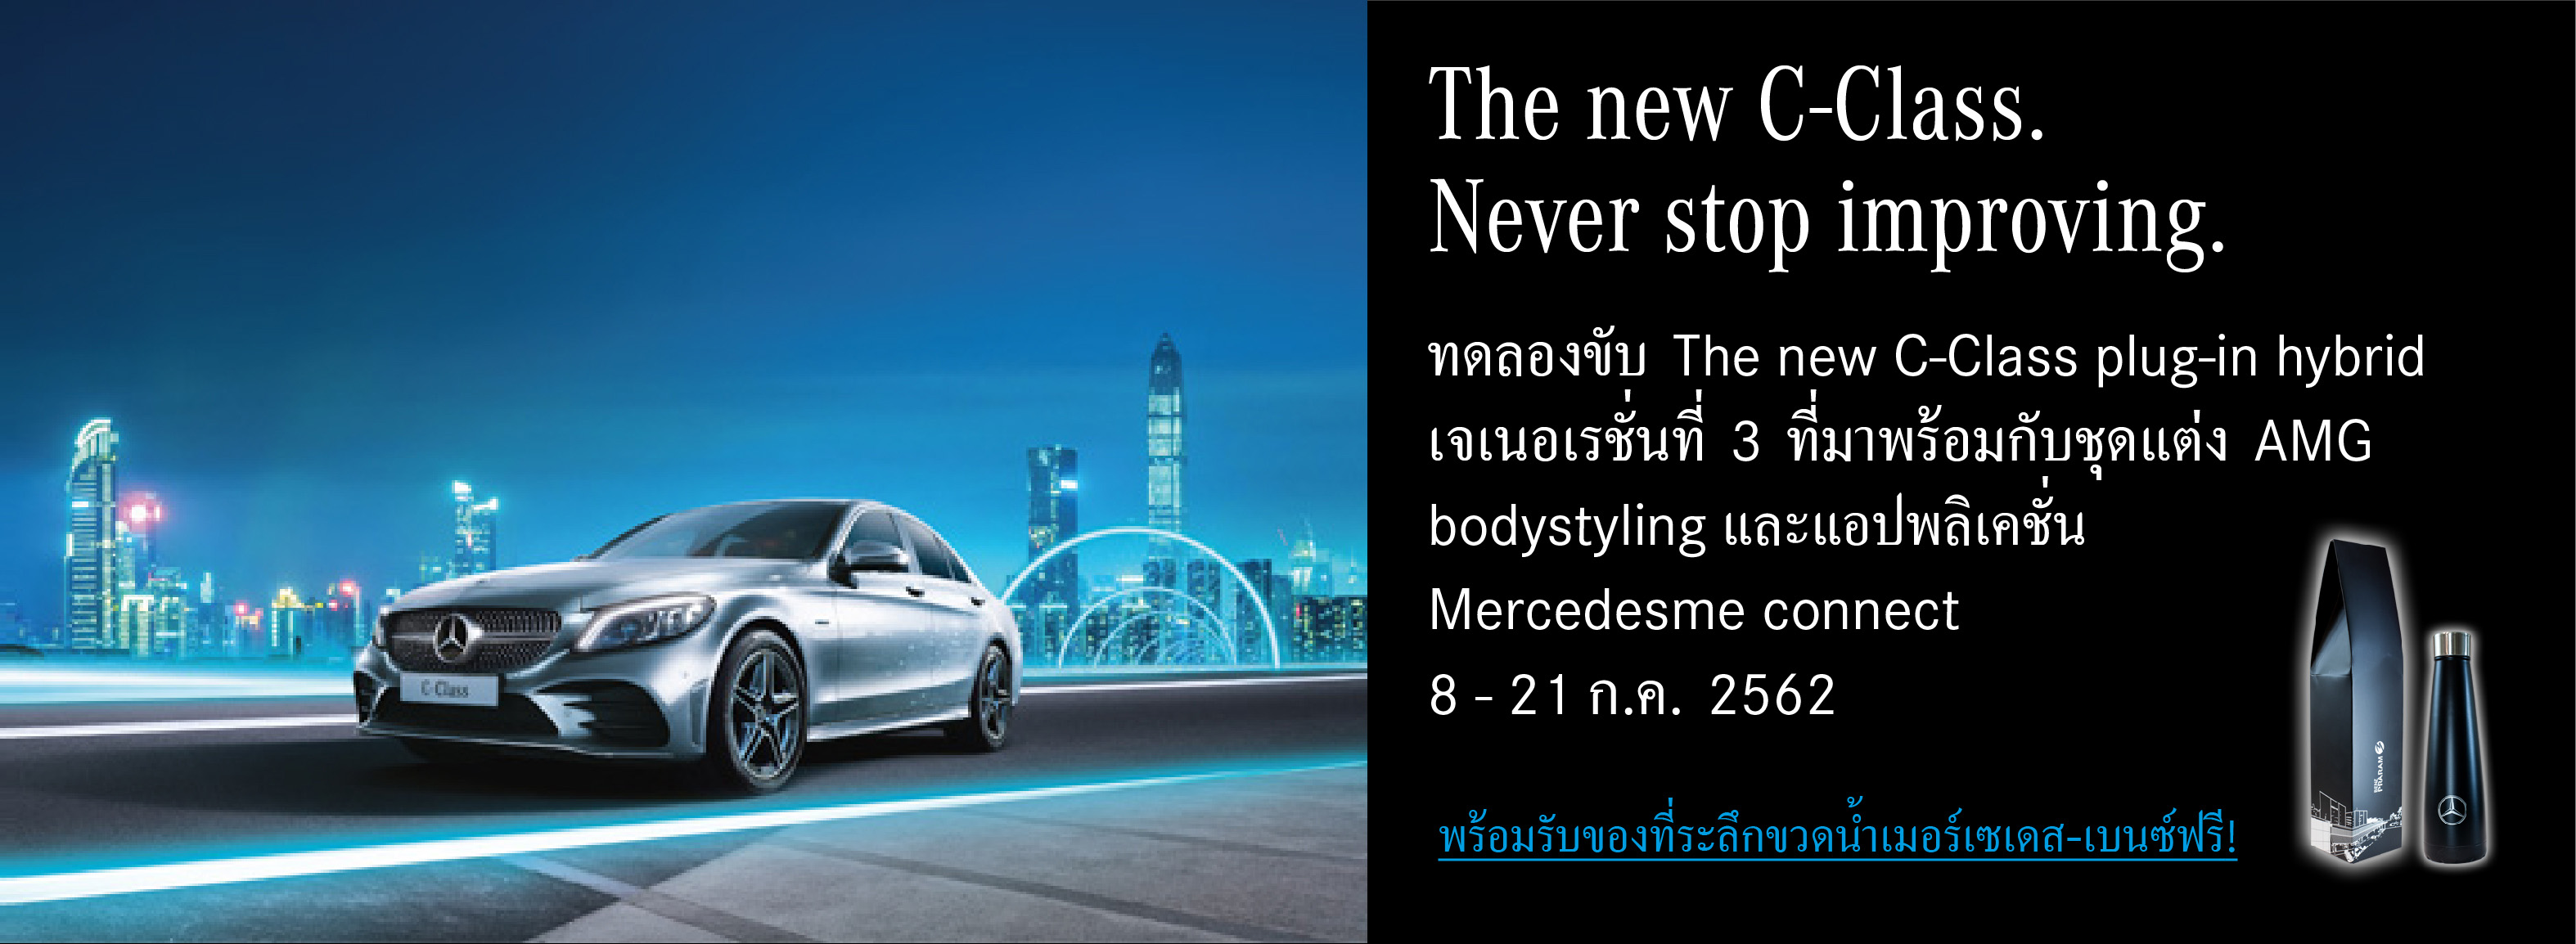 Sale Promotion The New C-Class